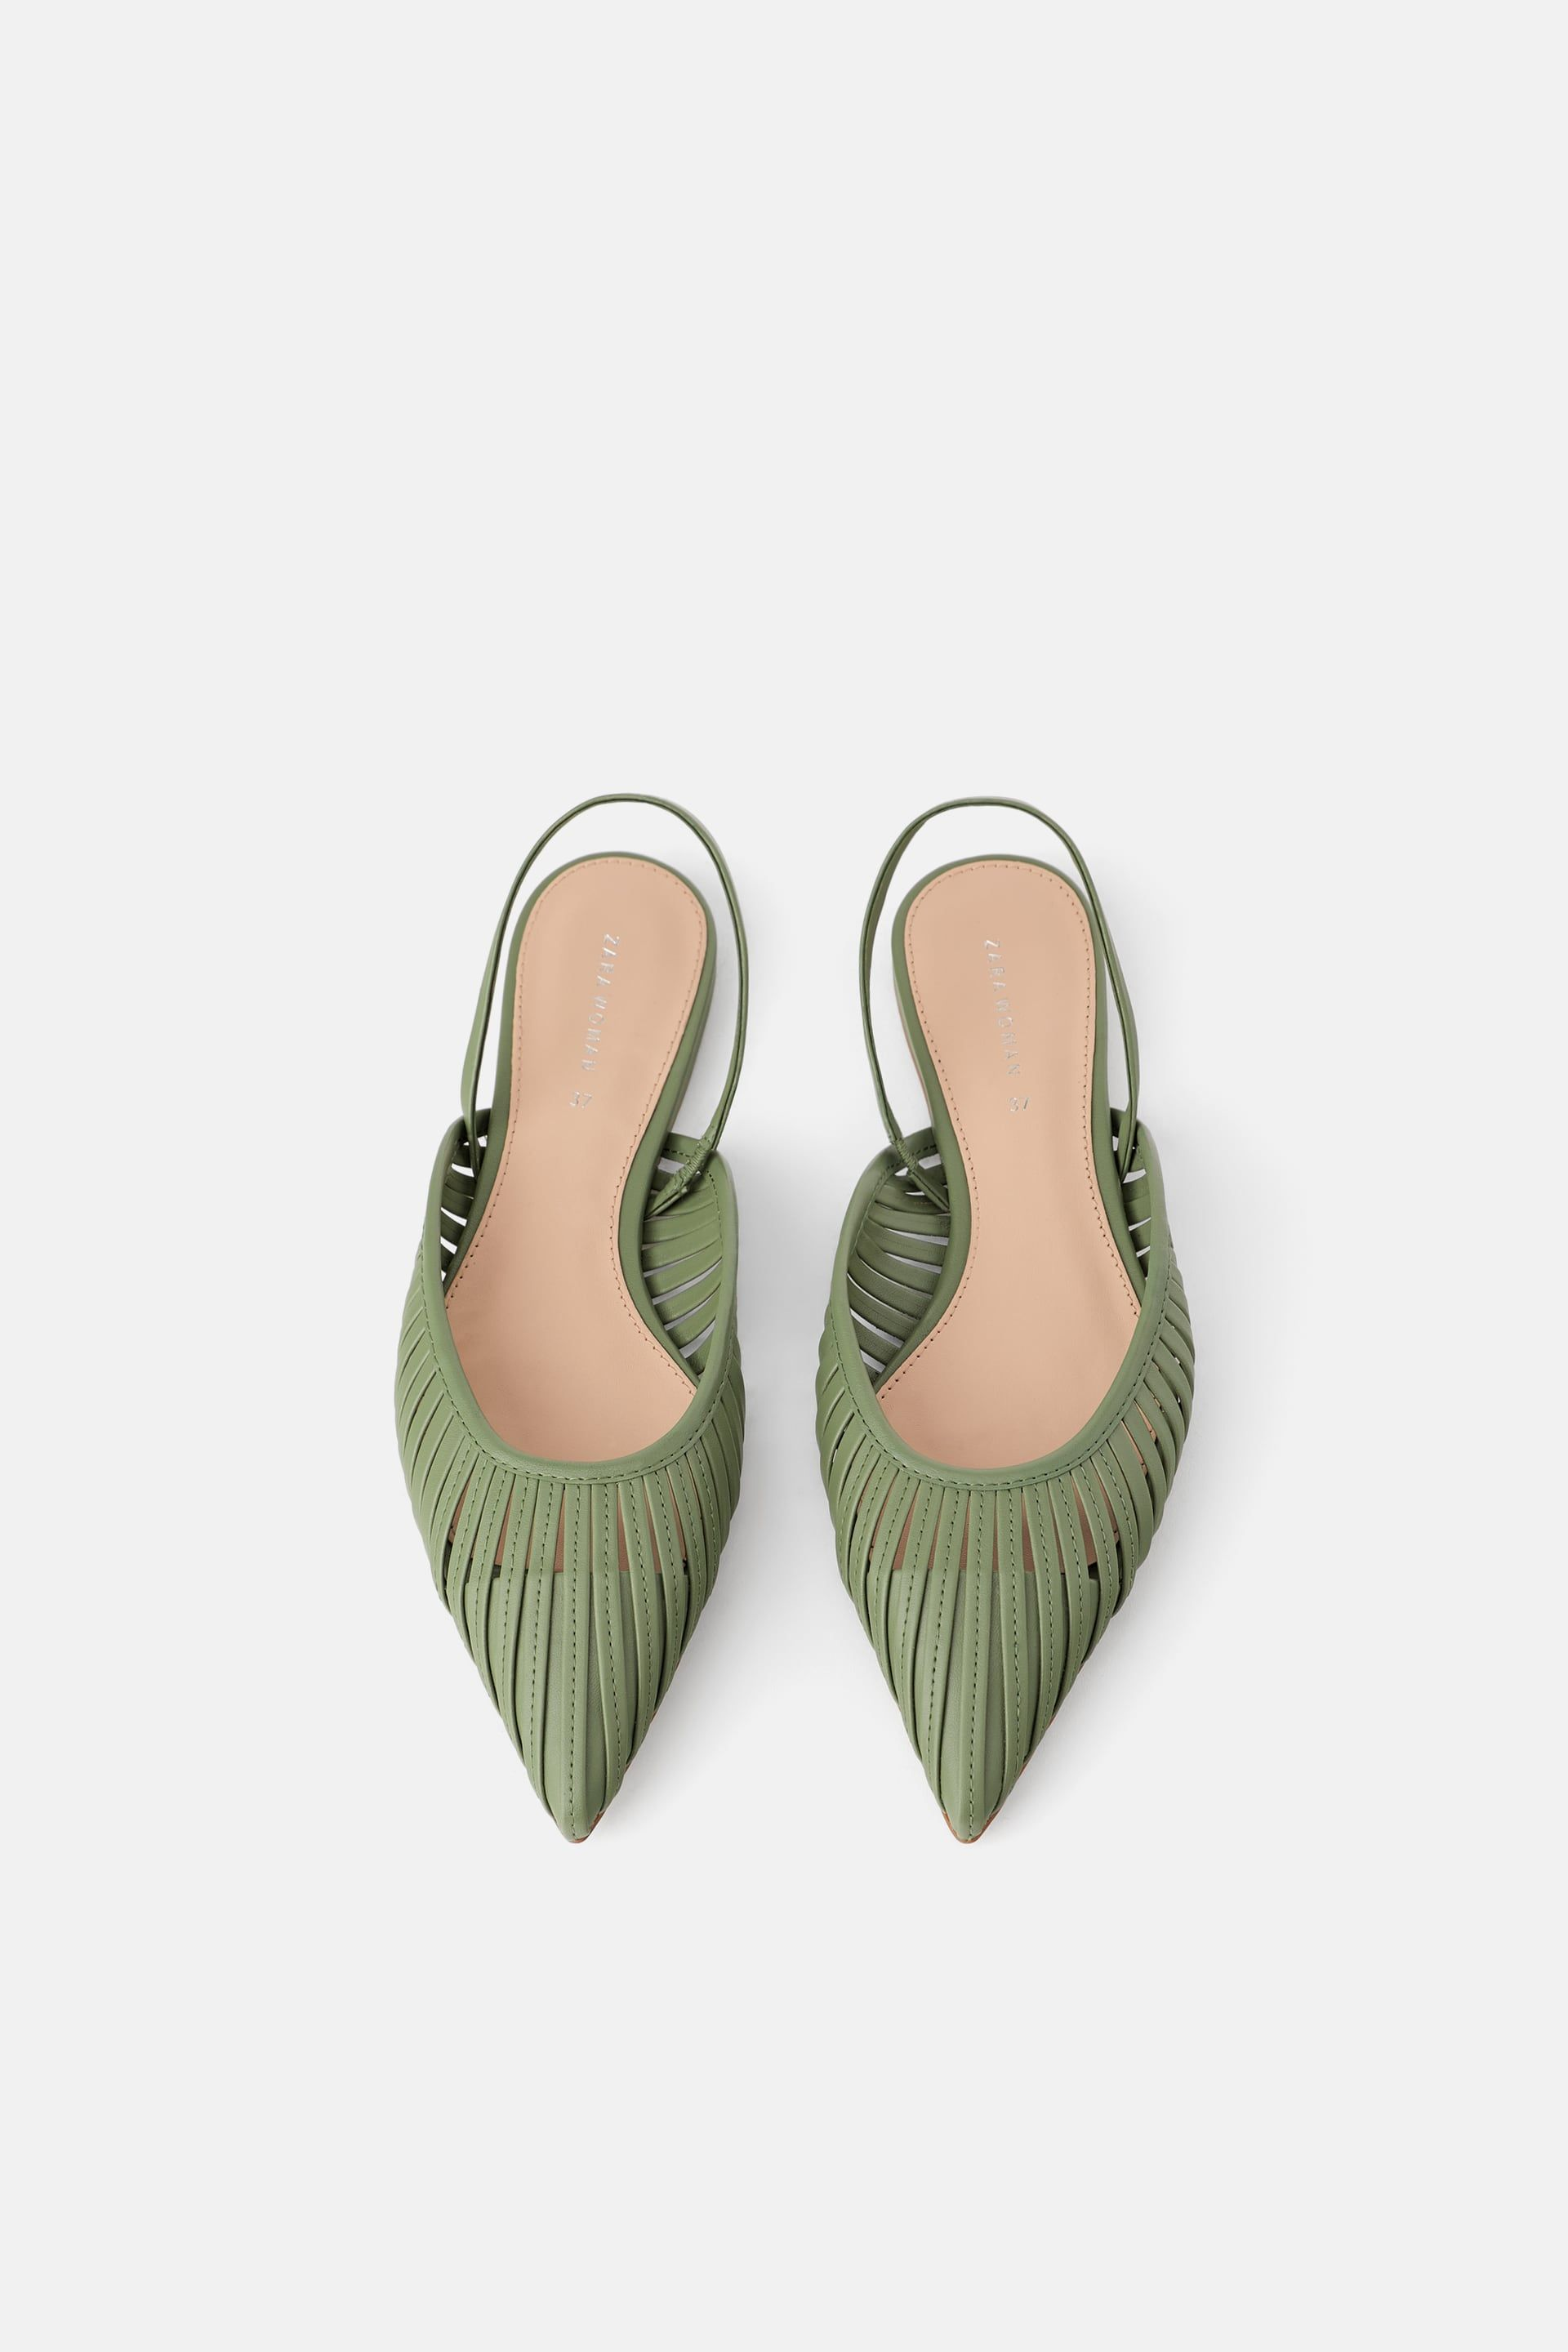 b0232d1b7b Flat cage slingbacks in 2019 | SHOES | Zara flats, Slingback shoes ...